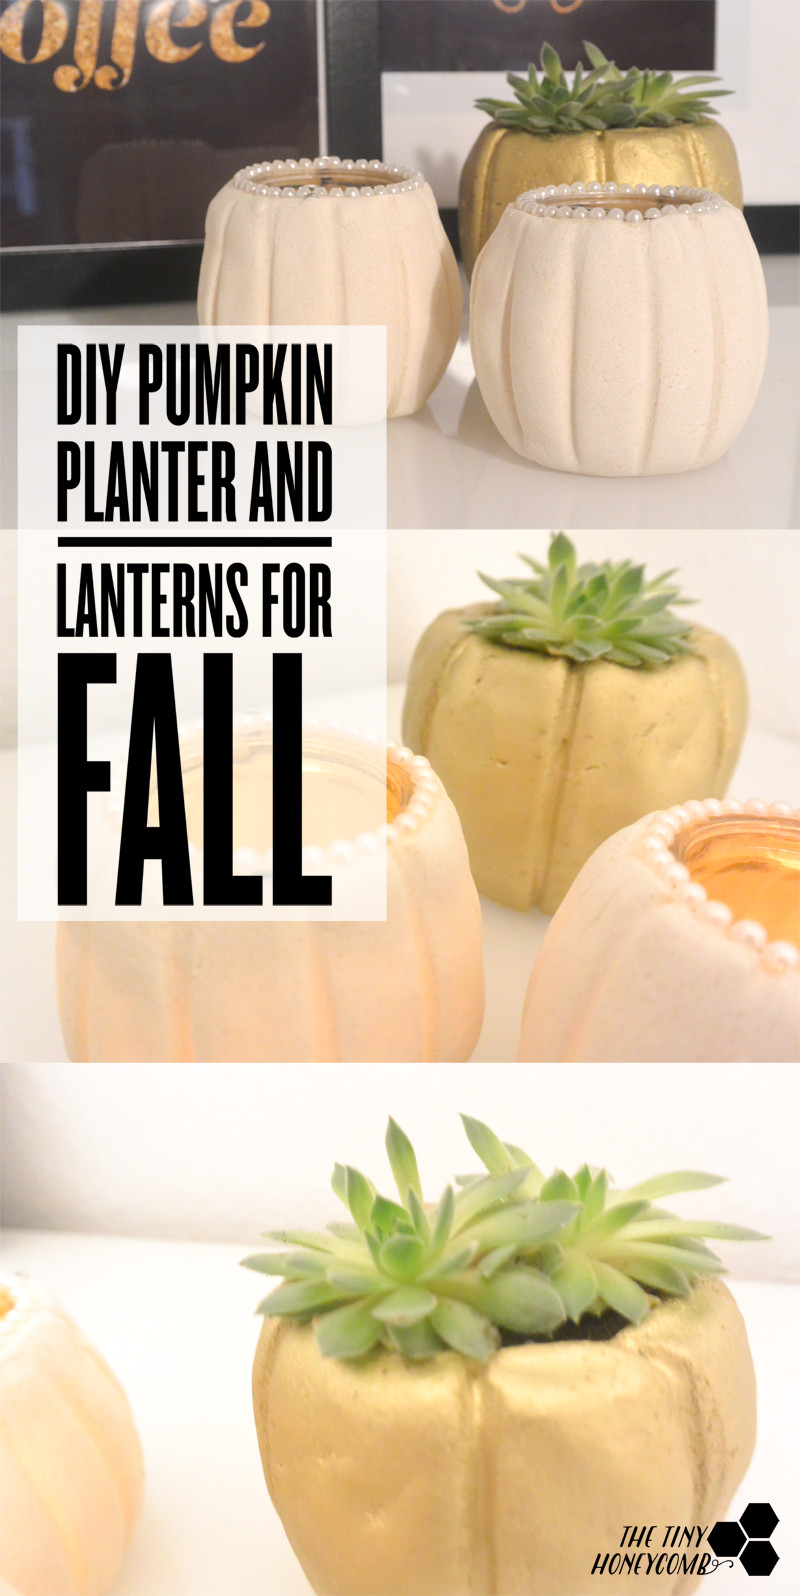 DIY pumpkin planter and lanterns for fall. The tiny honeycomb blog